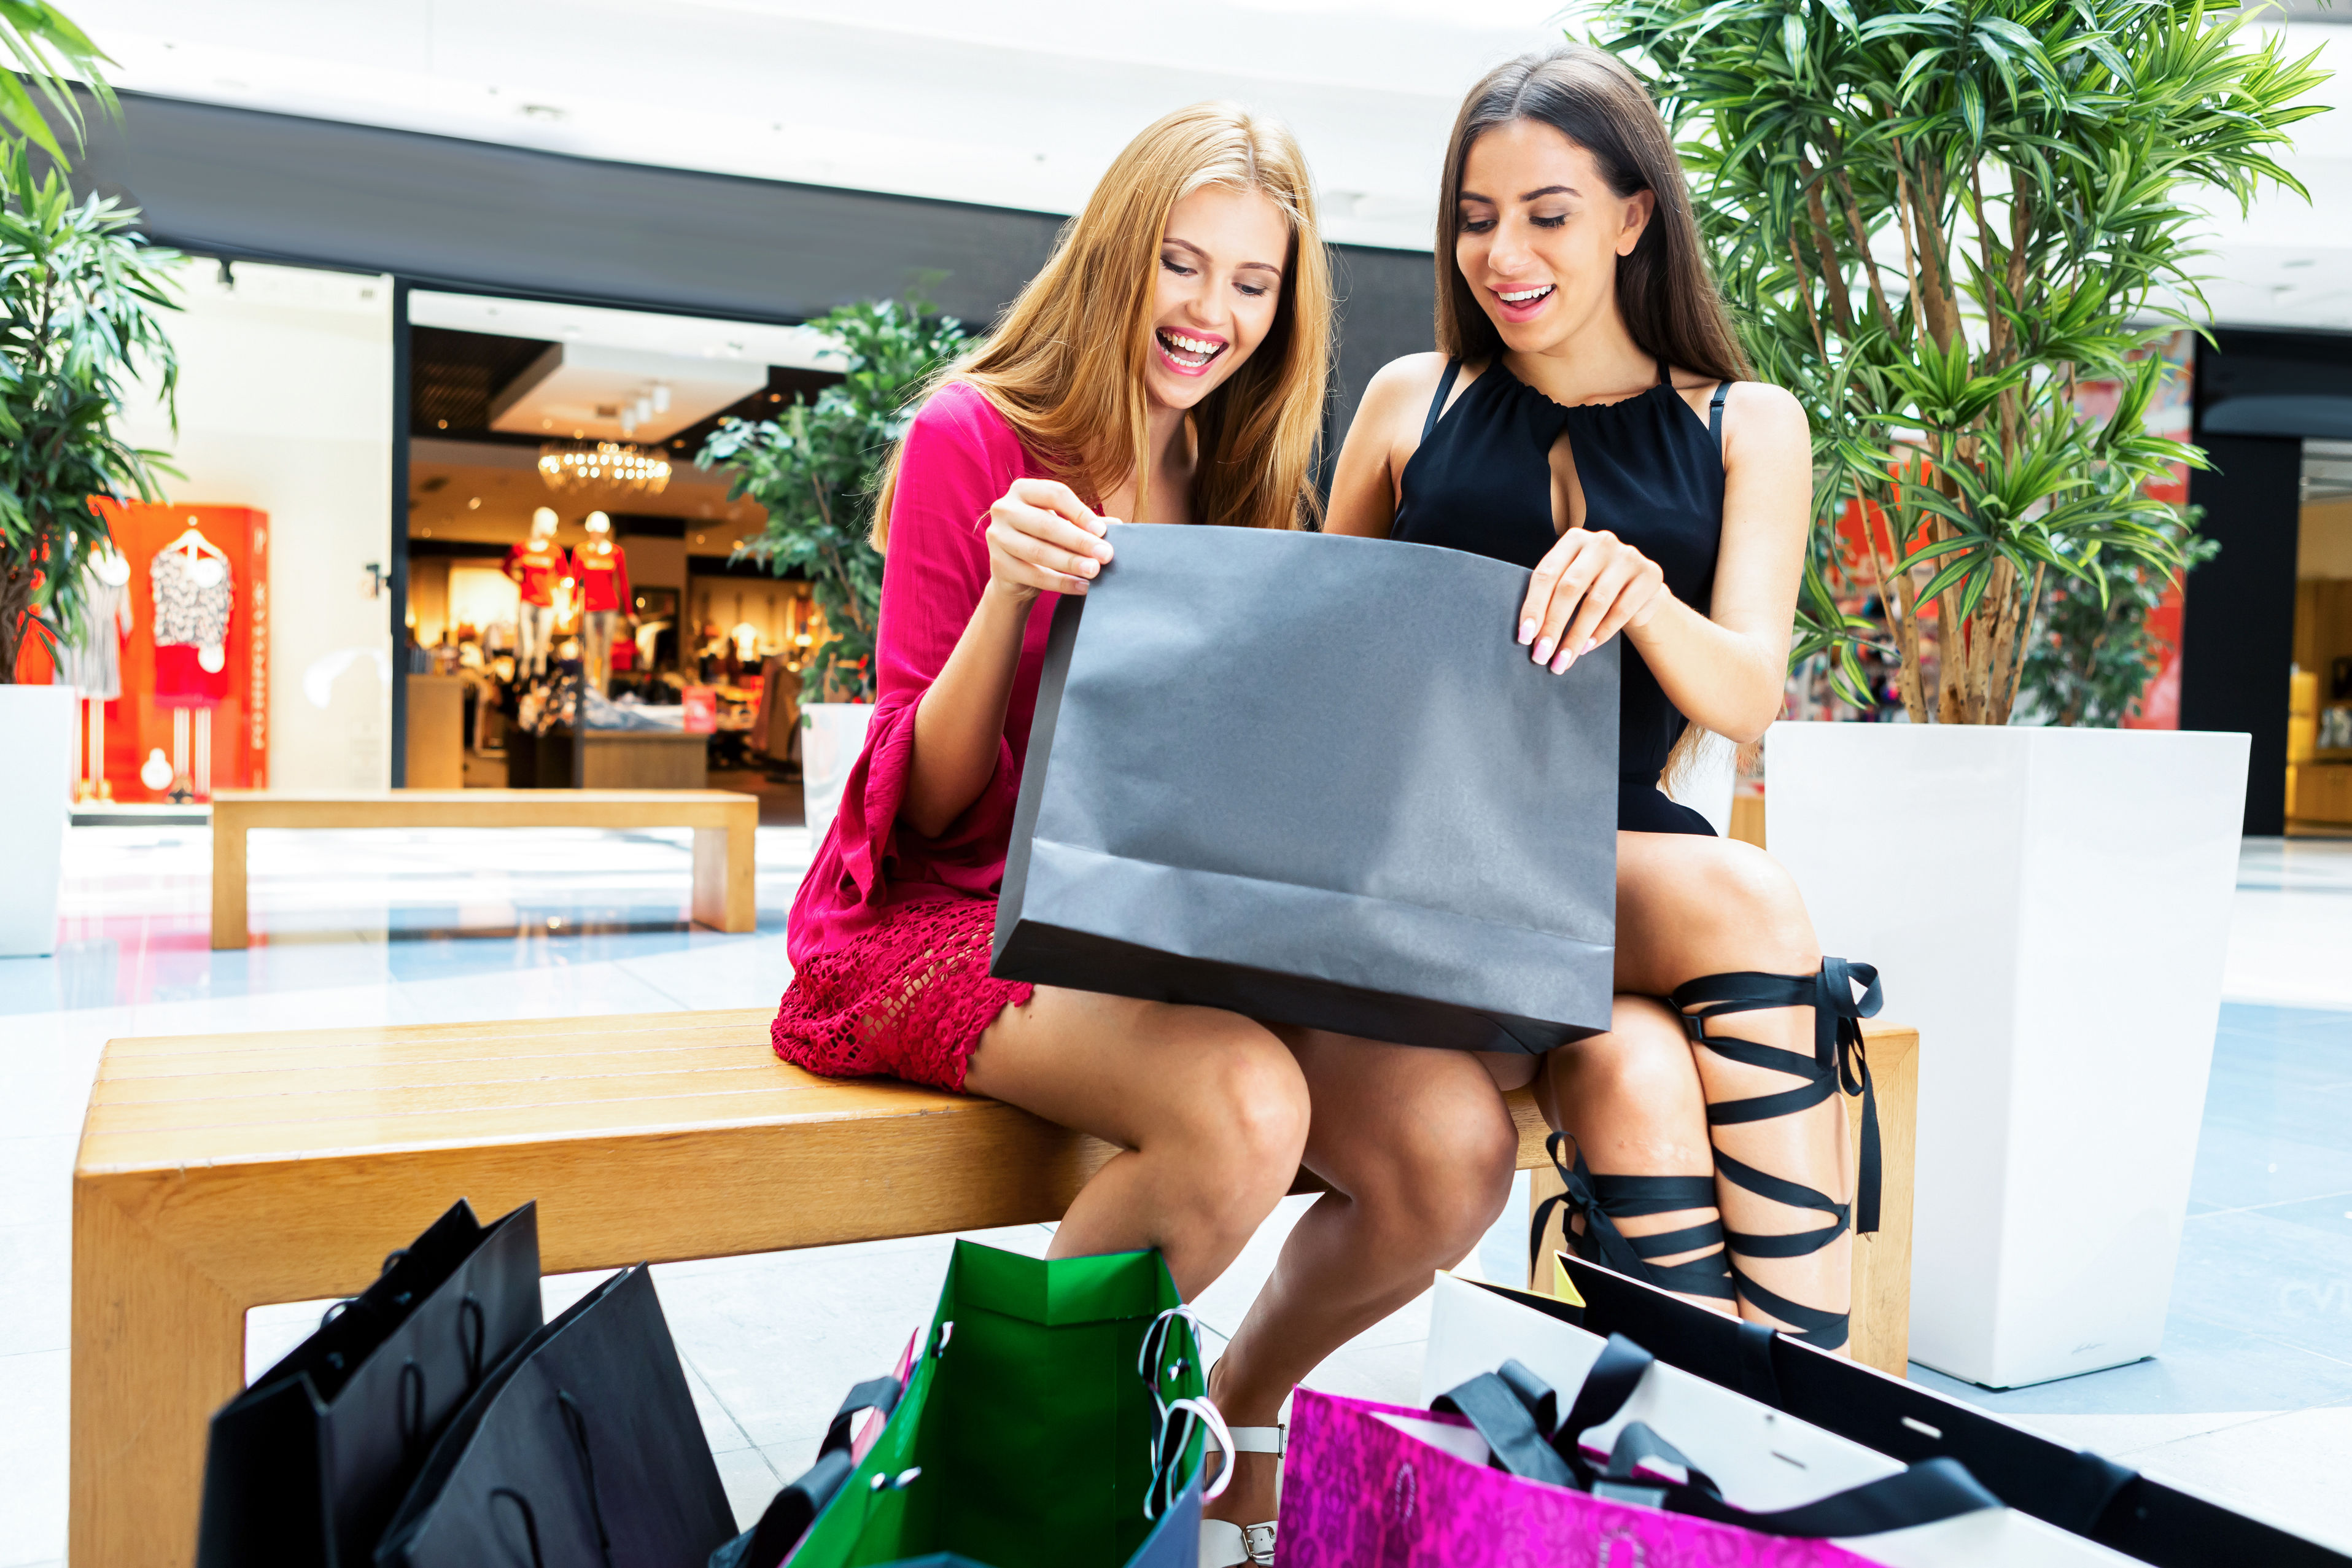 44190719 - the girls enjoy the acquired shopping in the store. it's a very happy day